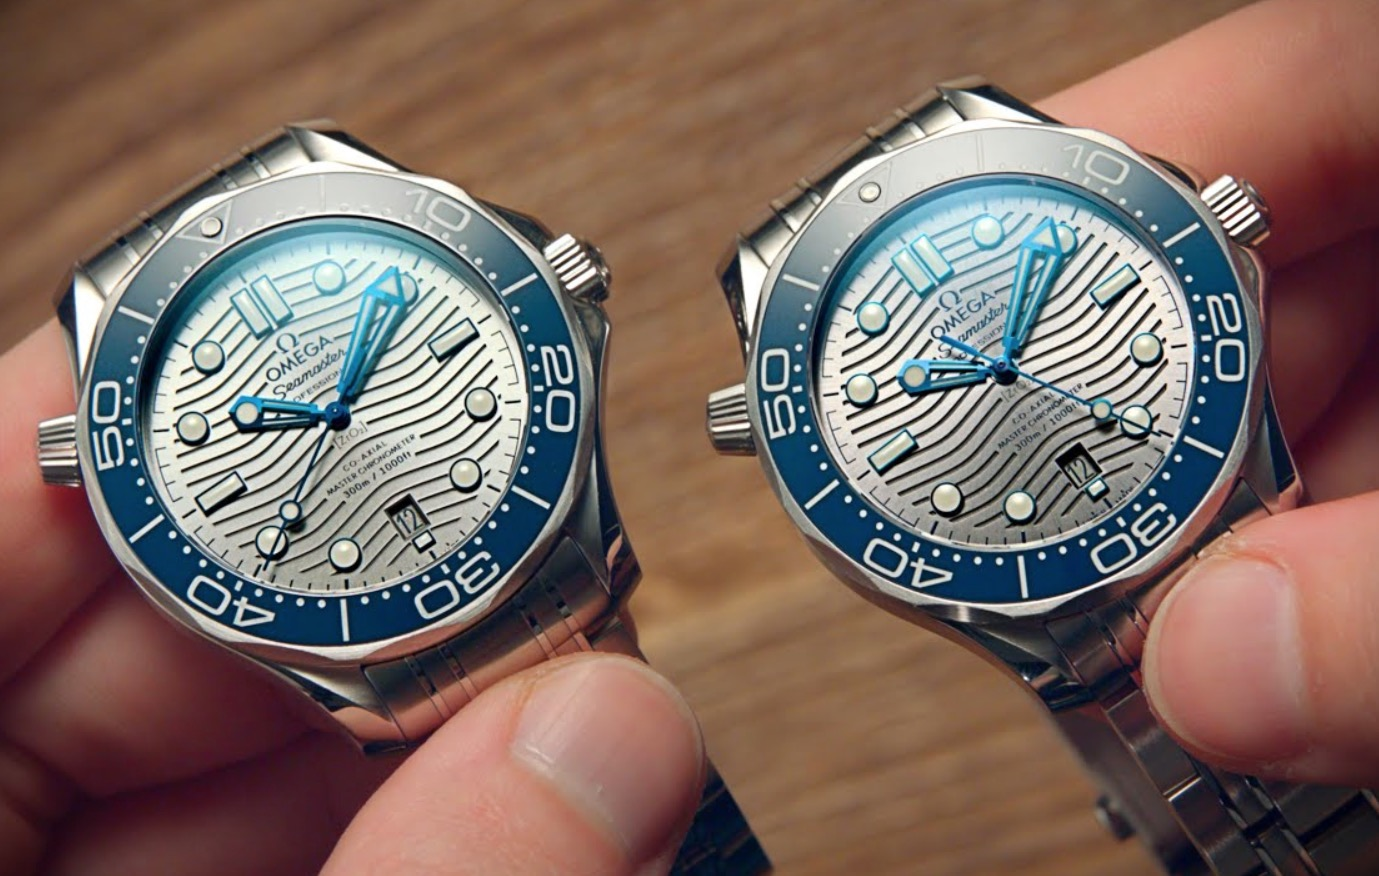 Watch Expert Struggles To Find Any Flaws In 'Unbelievable' Counterfeit Omega Seamaster